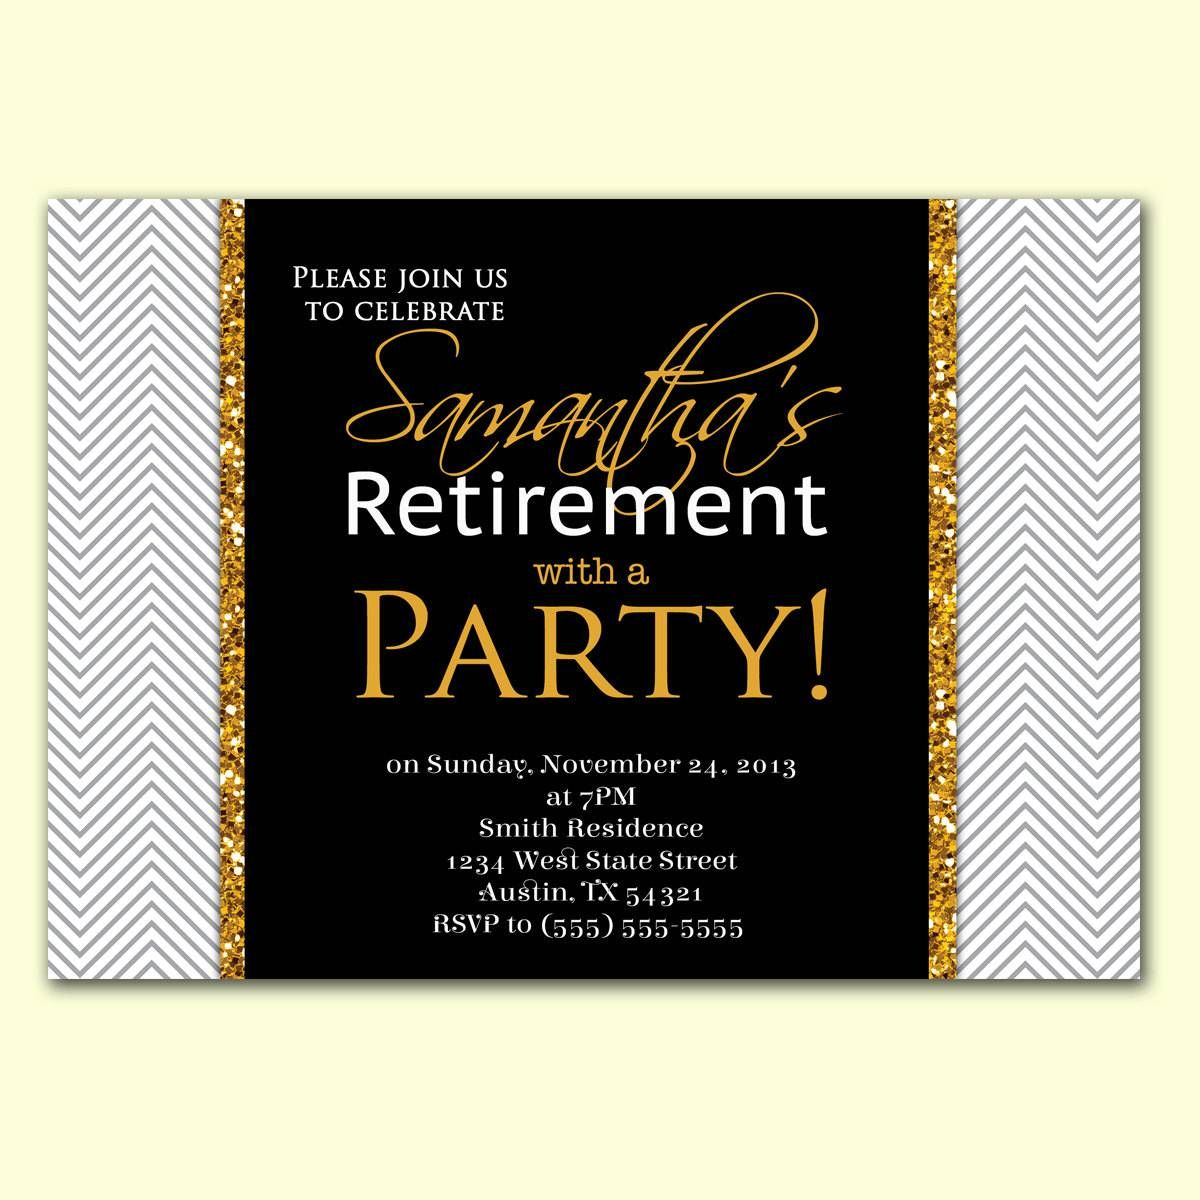 Retirement Party Invitation Wording In Hindi invites – Retirement Party Invitation Template